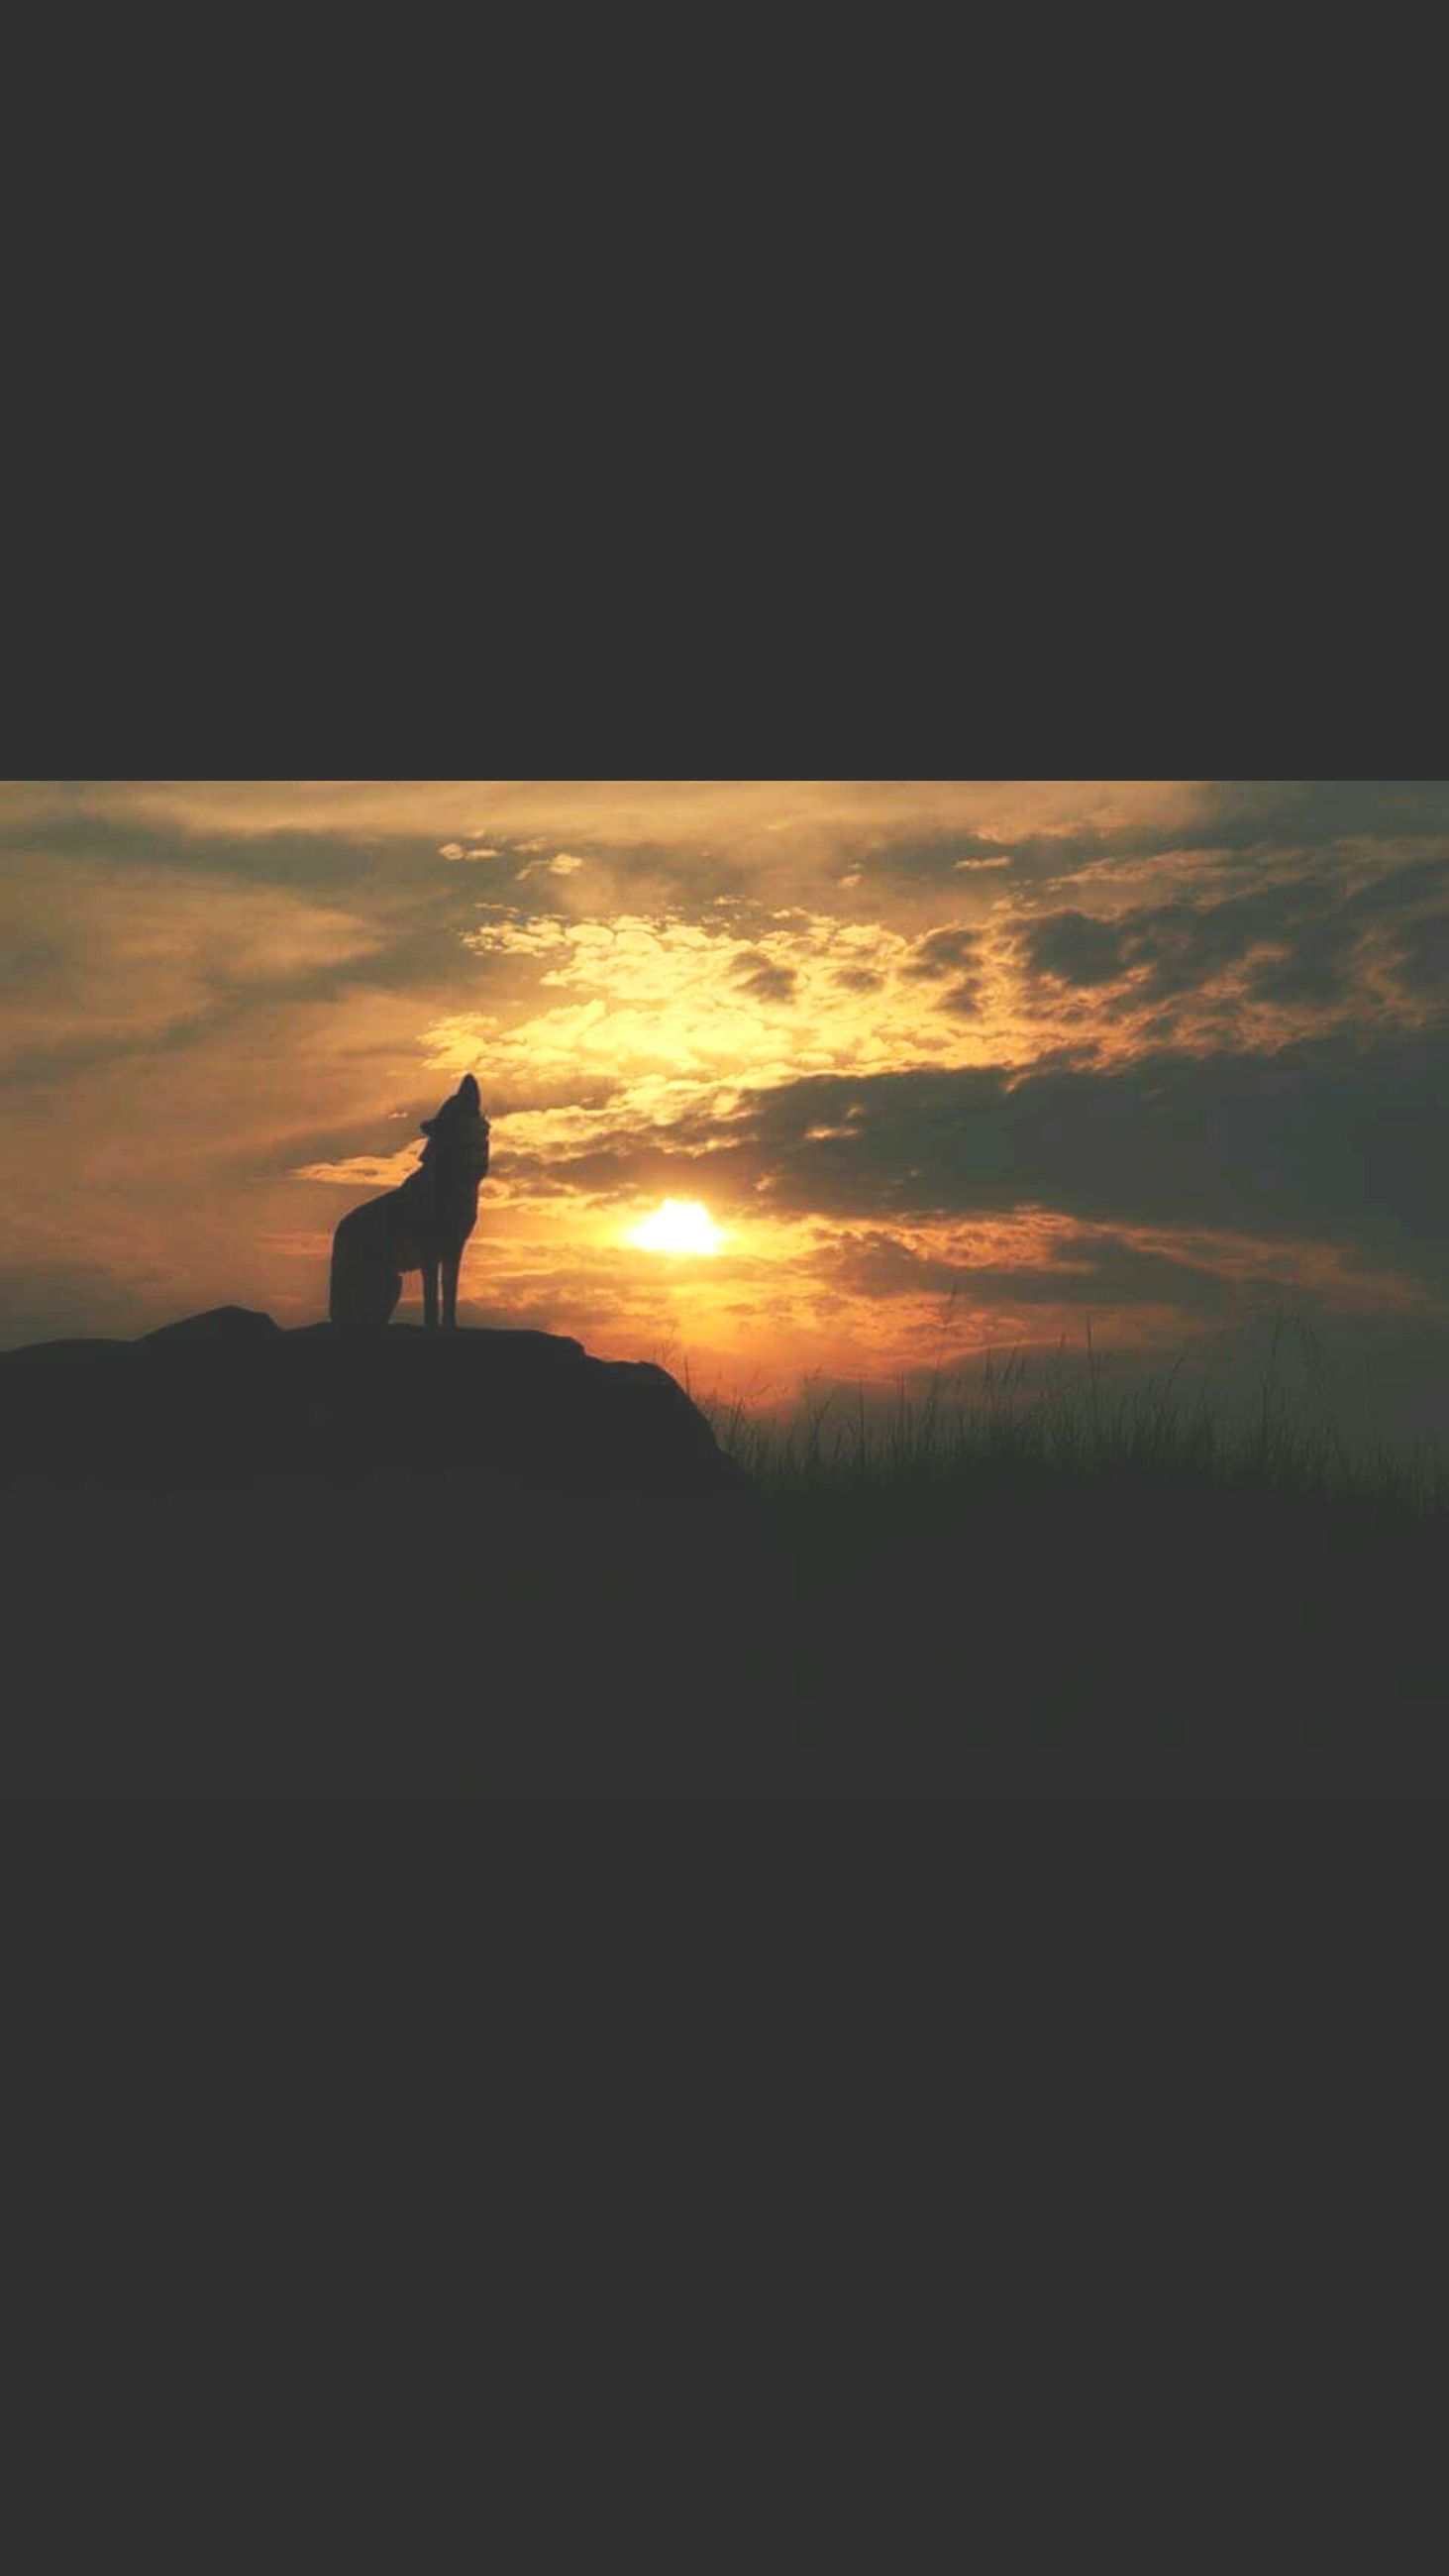 sunset, silhouette, animal themes, one animal, orange color, sky, bird, animals in the wild, wildlife, sun, beauty in nature, domestic animals, nature, scenics, tranquility, tranquil scene, mammal, copy space, outline, sunlight